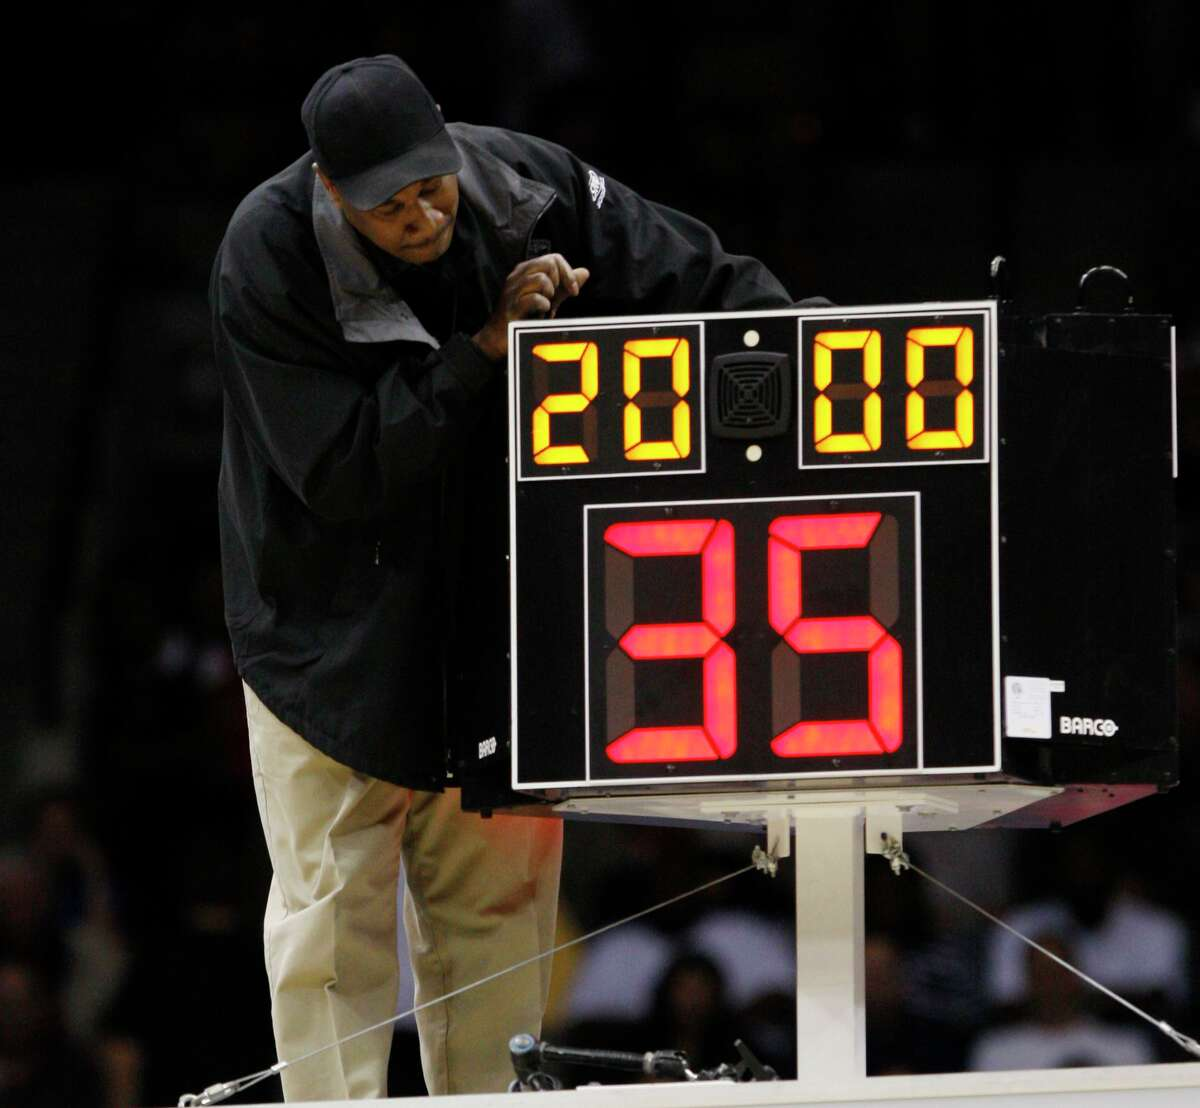 The CIAC basketball committees have sent a formal proposal to the CIAC to adopt a shot clock starting in the 2022-23 season.